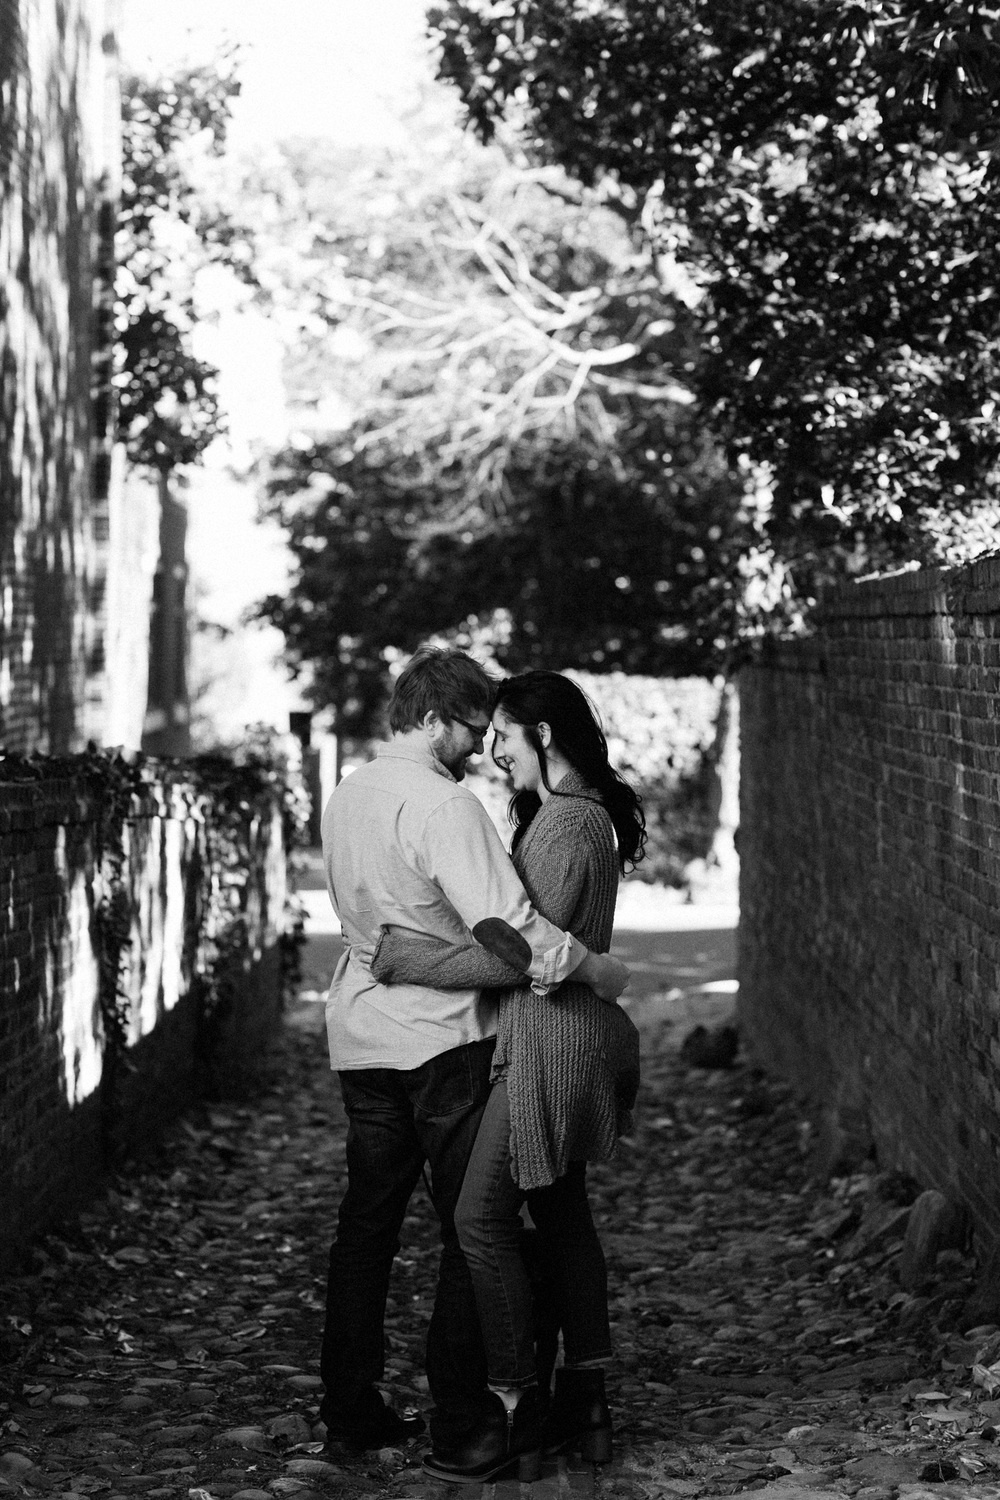 307-old-town-alexandria-northern-virginia-engagement-photography.jpg